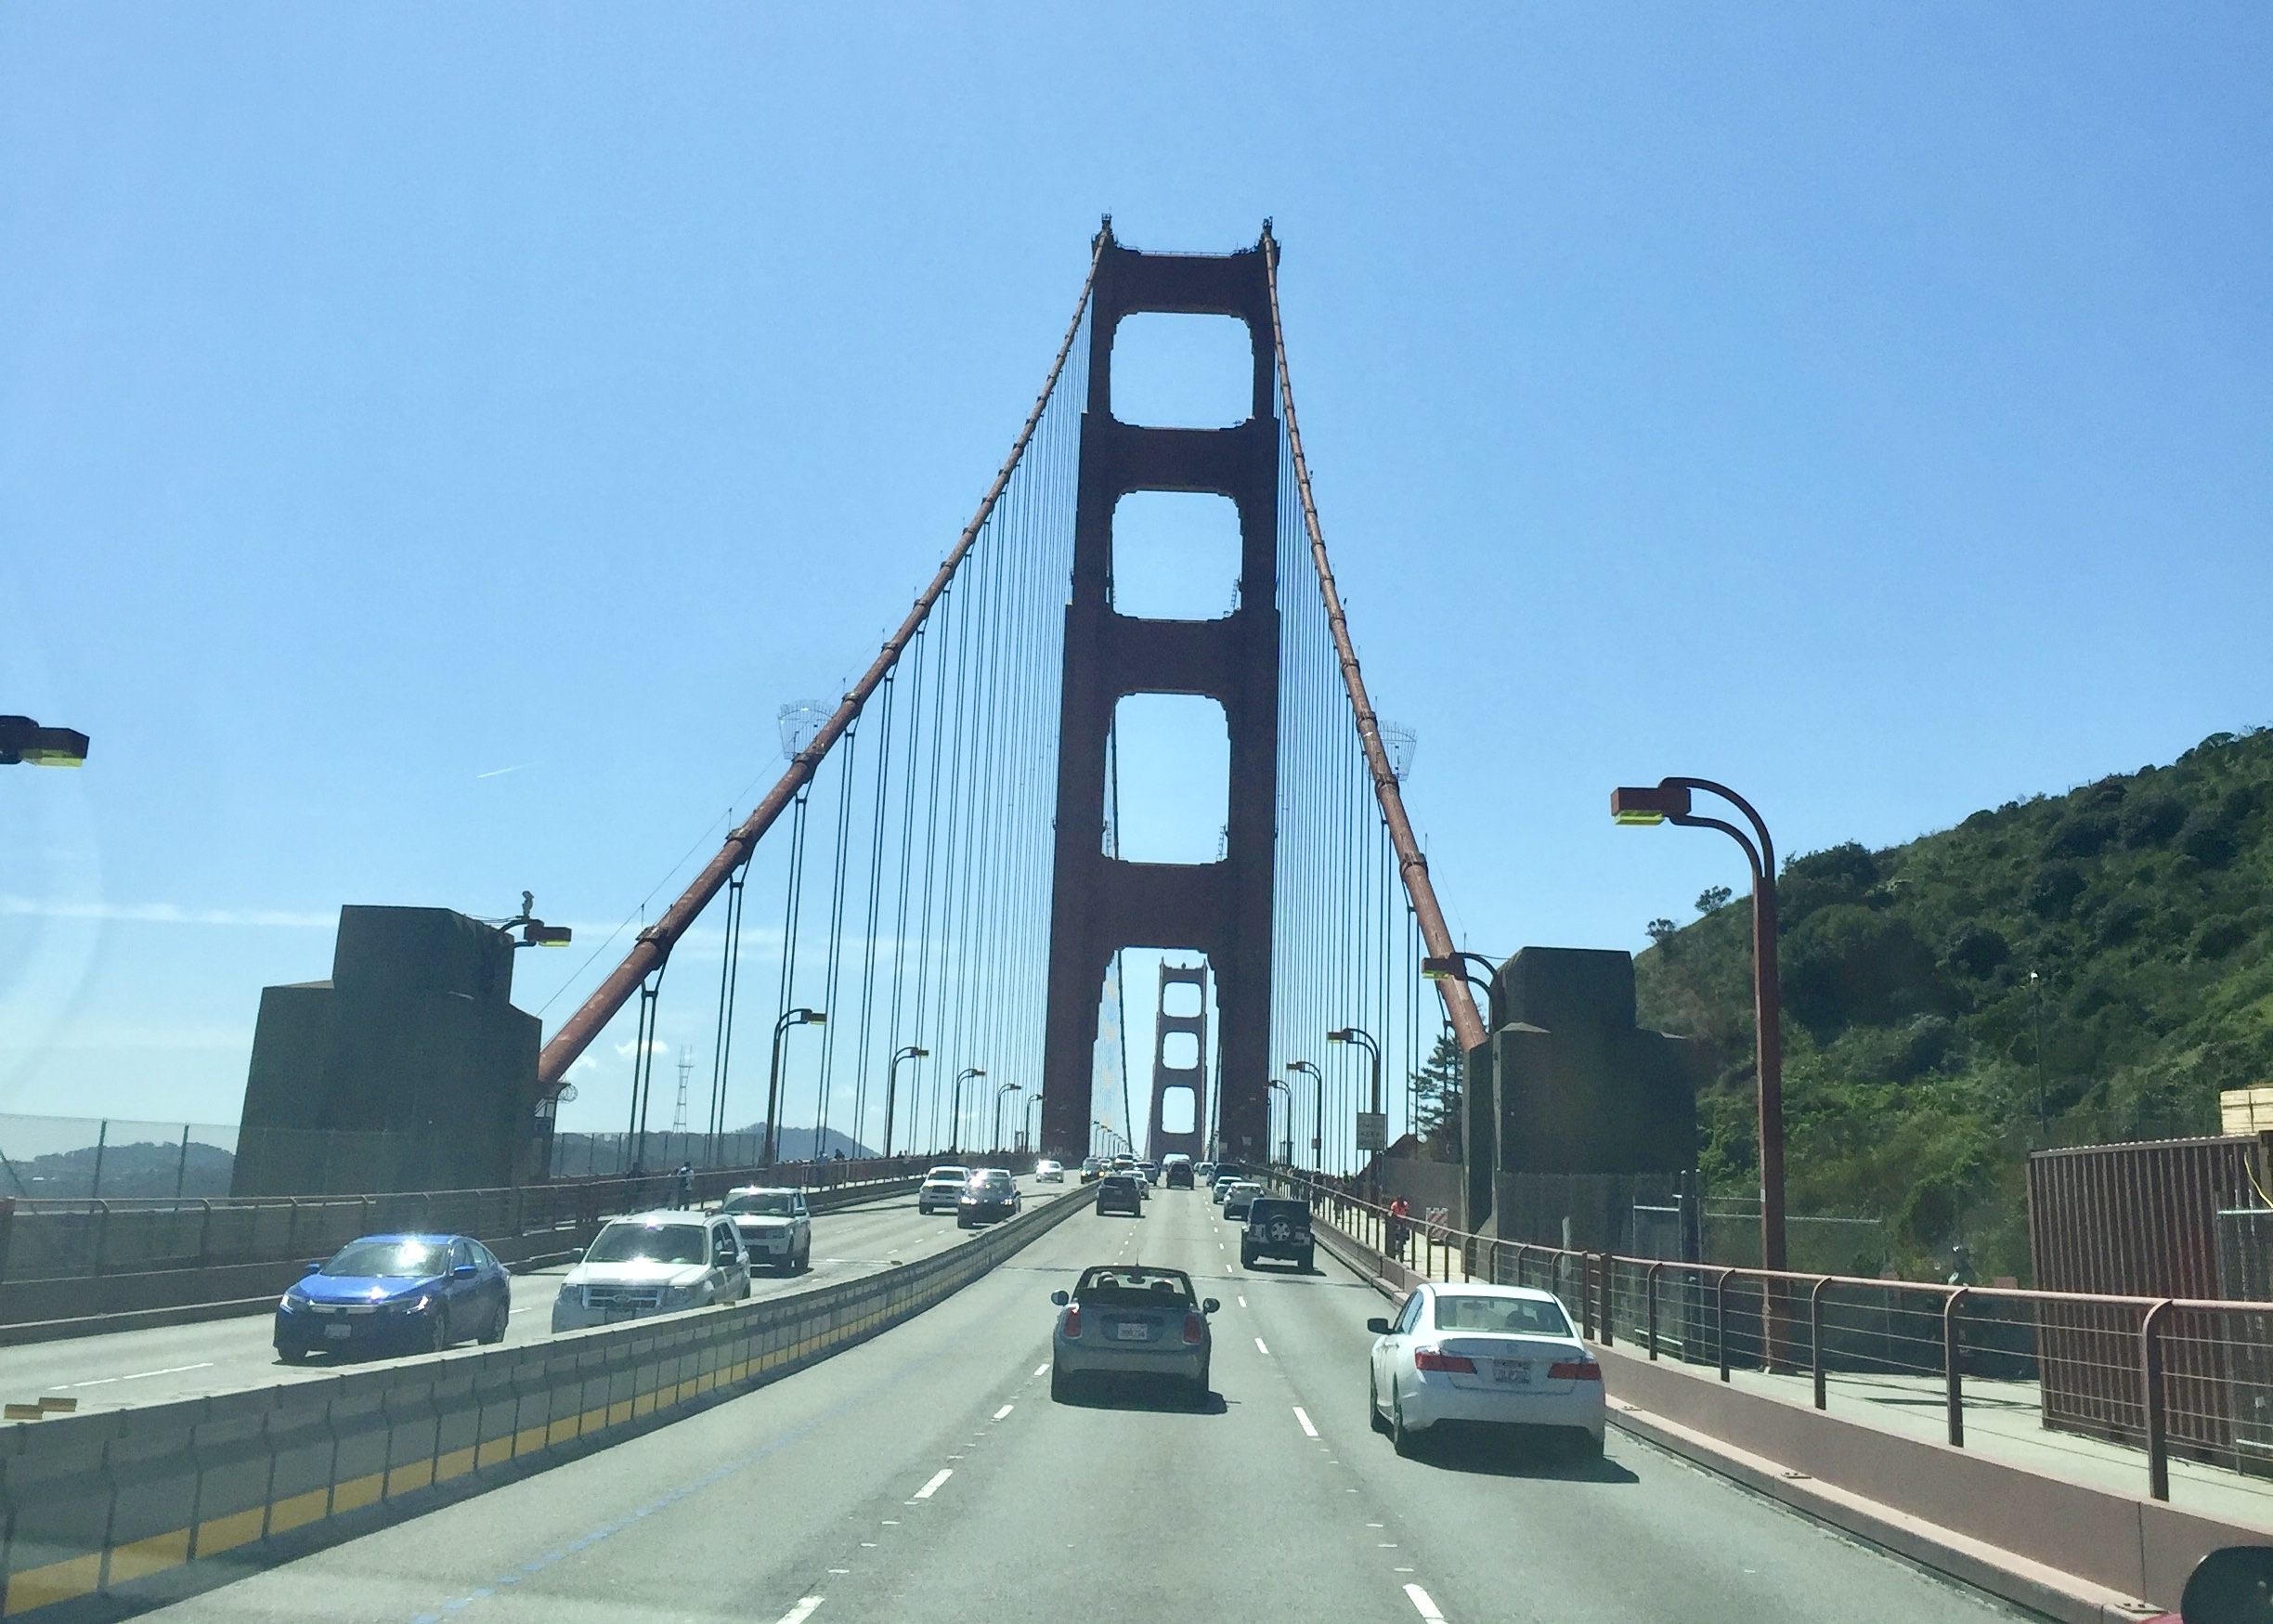 Driving across the Golden Gate Bridge, taken through the windshield of the car at street level